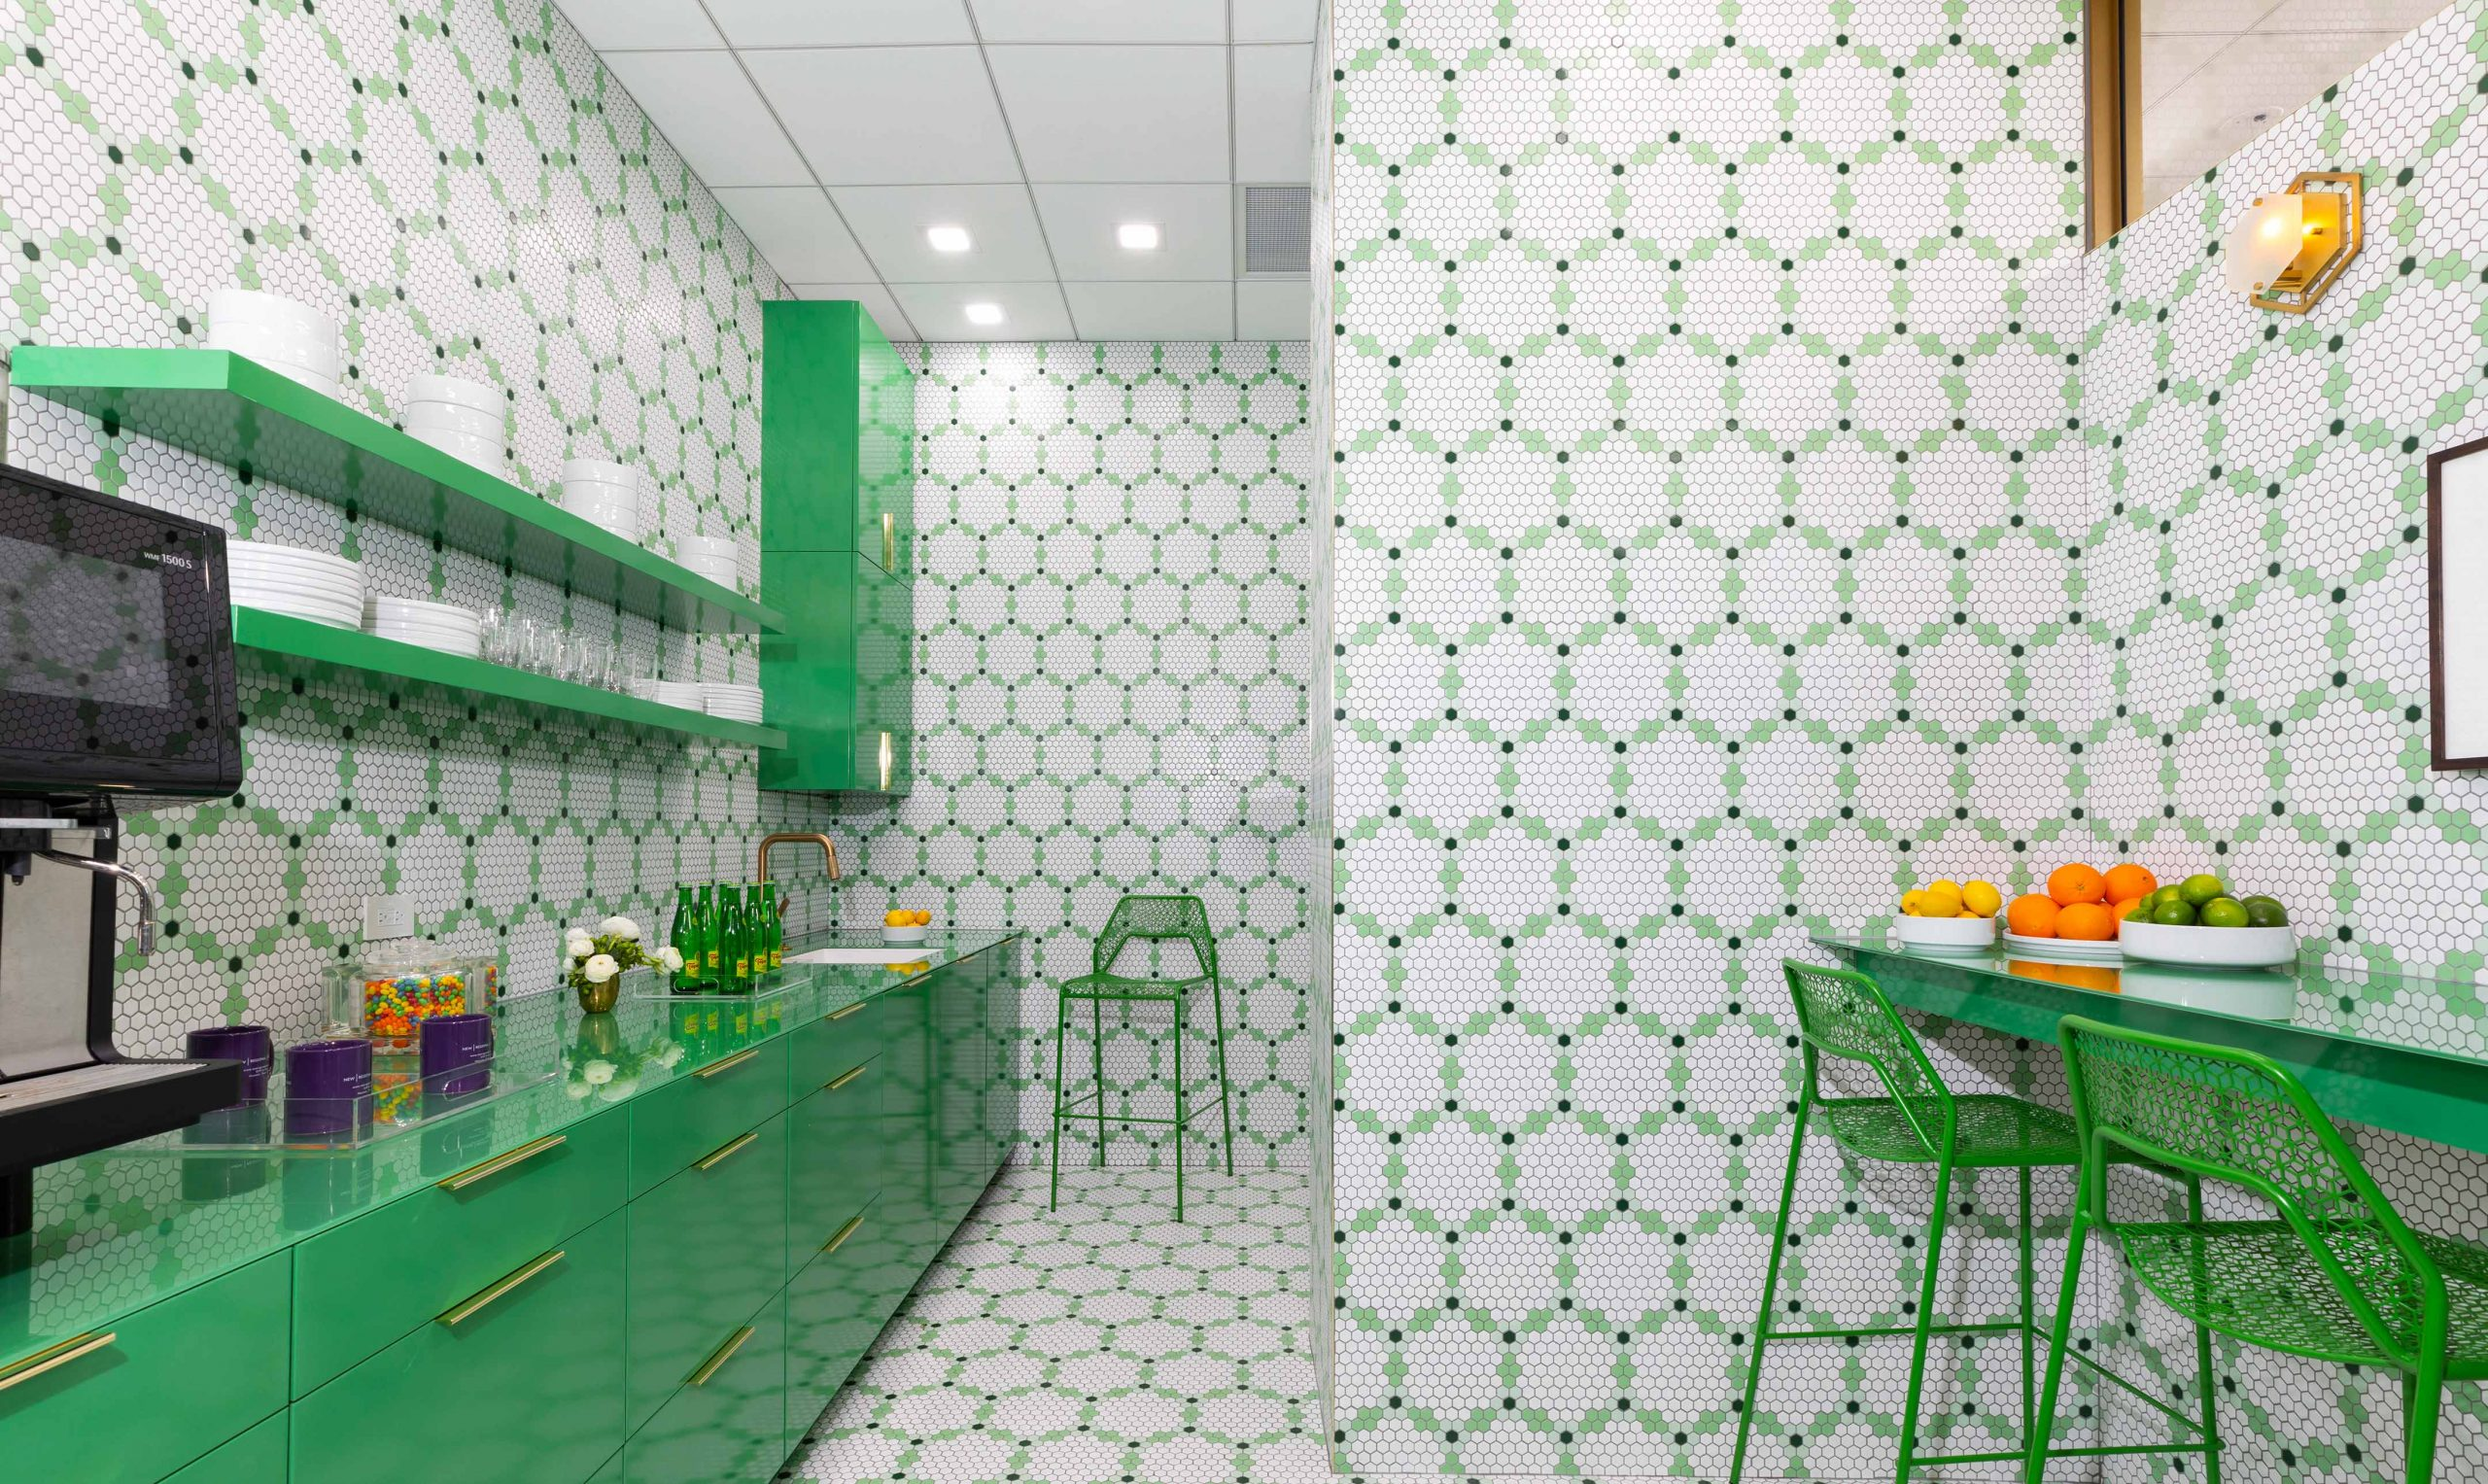 tiled kitchen with green and white accents - Creative Tonic